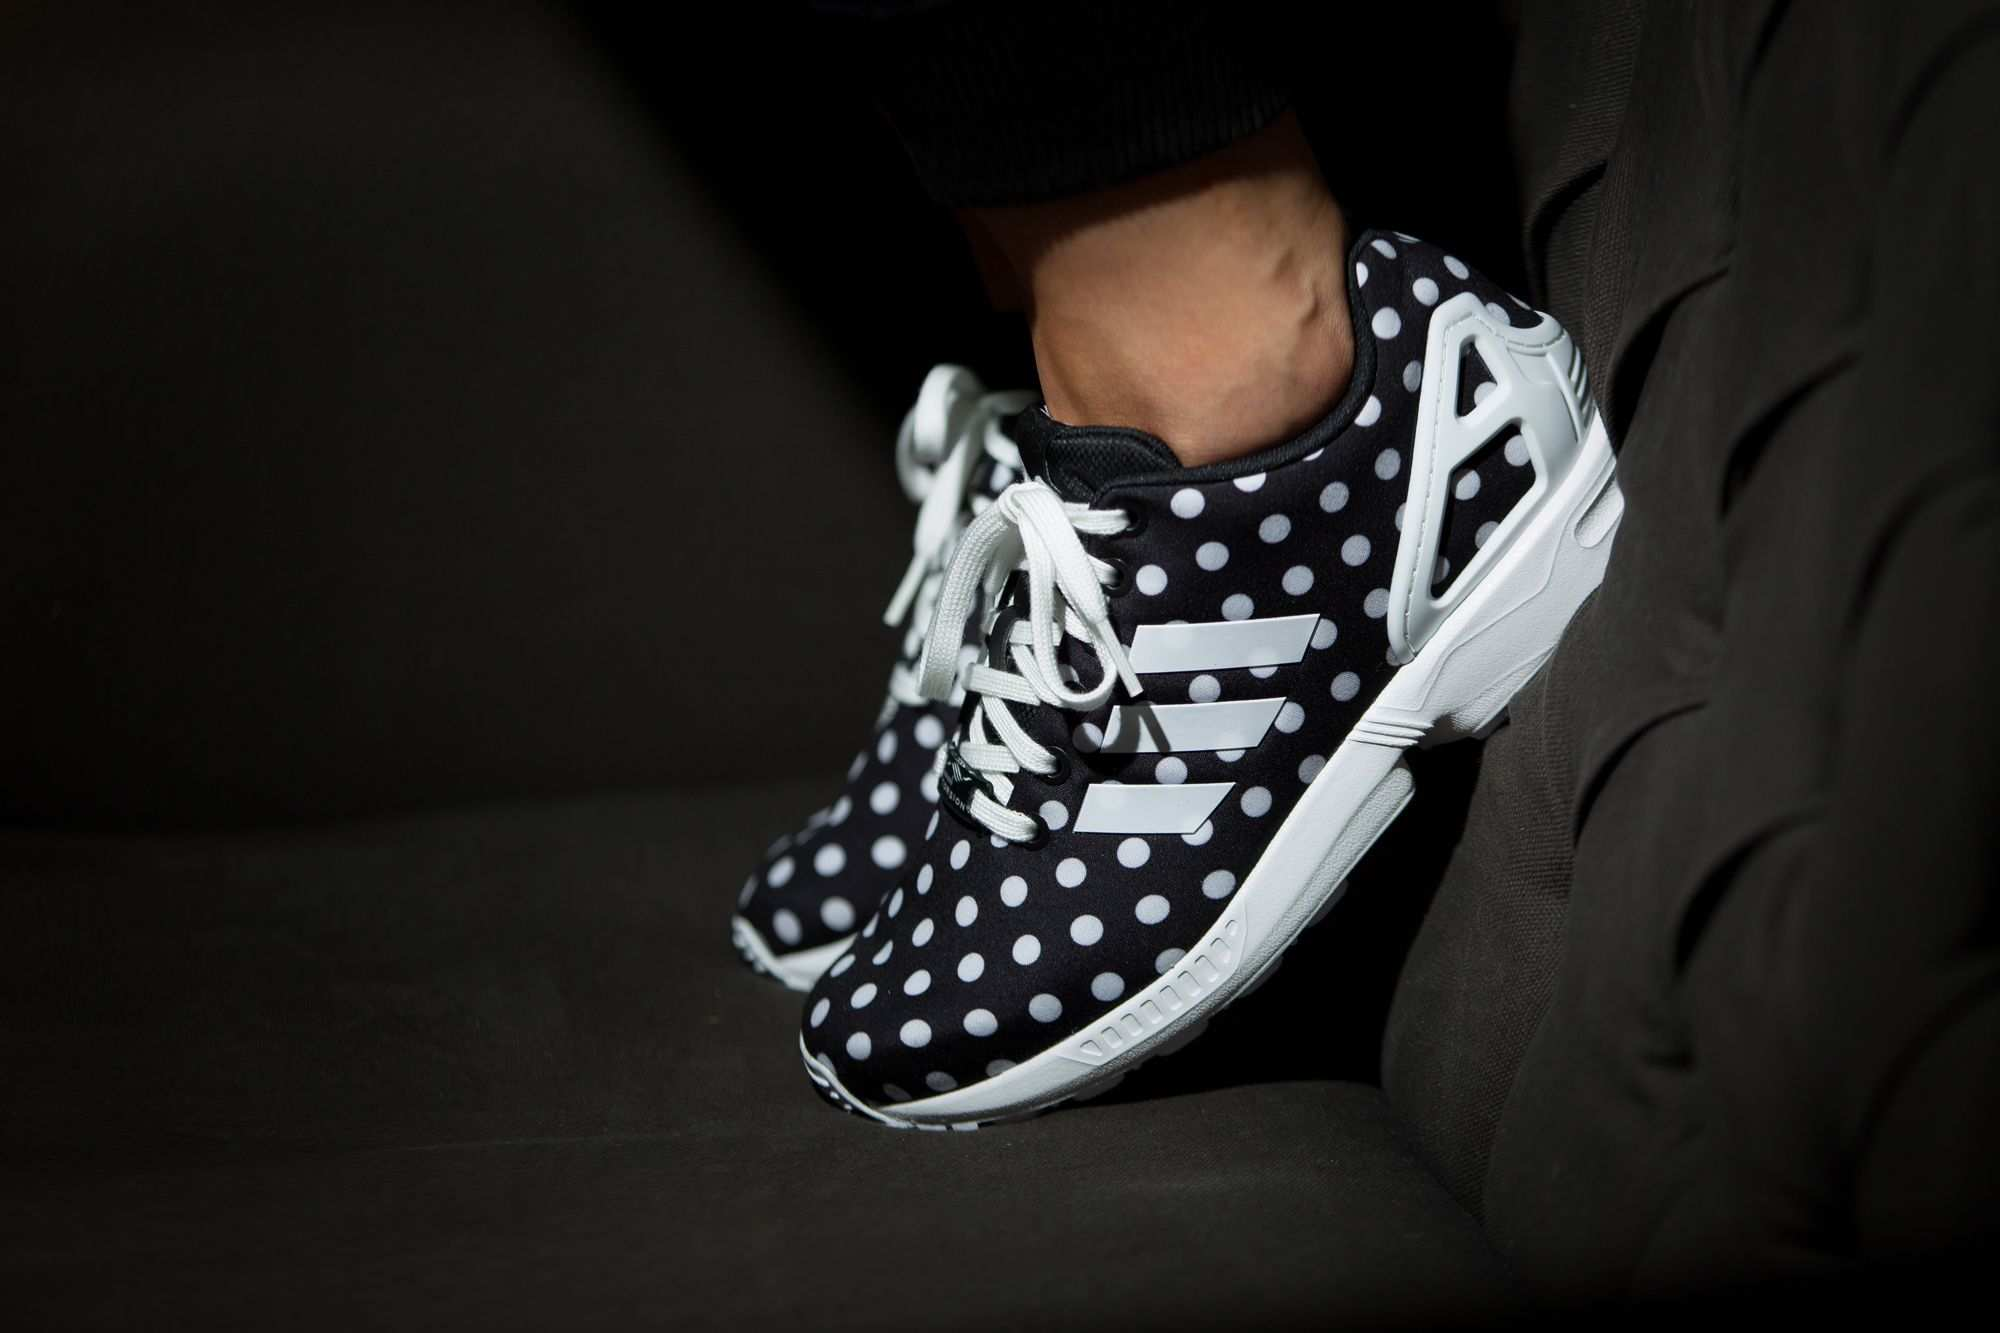 We Just Can T Get Enough Of Polka Dots What About You Girls The Adidas Originals Zx Flux W Is Available At Our Shop N Girls Sneakers Sneakers Adidas Zx Flux